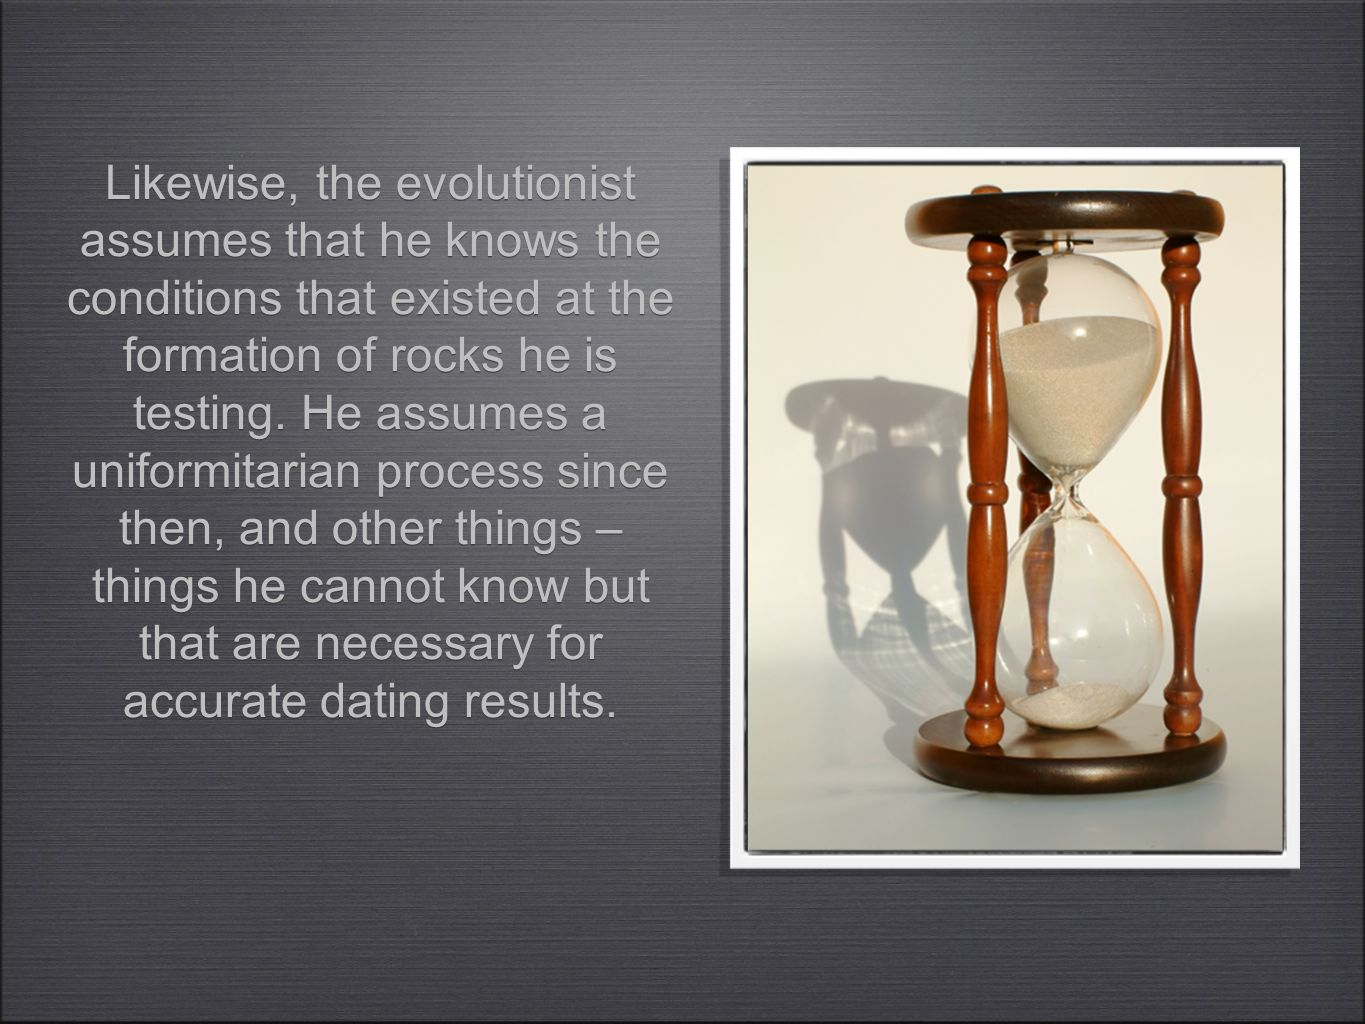 Likewise, the evolutionist assumes that he knows the conditions that existed at the formation of rocks he is testing. He assumes a uniformitarian proc